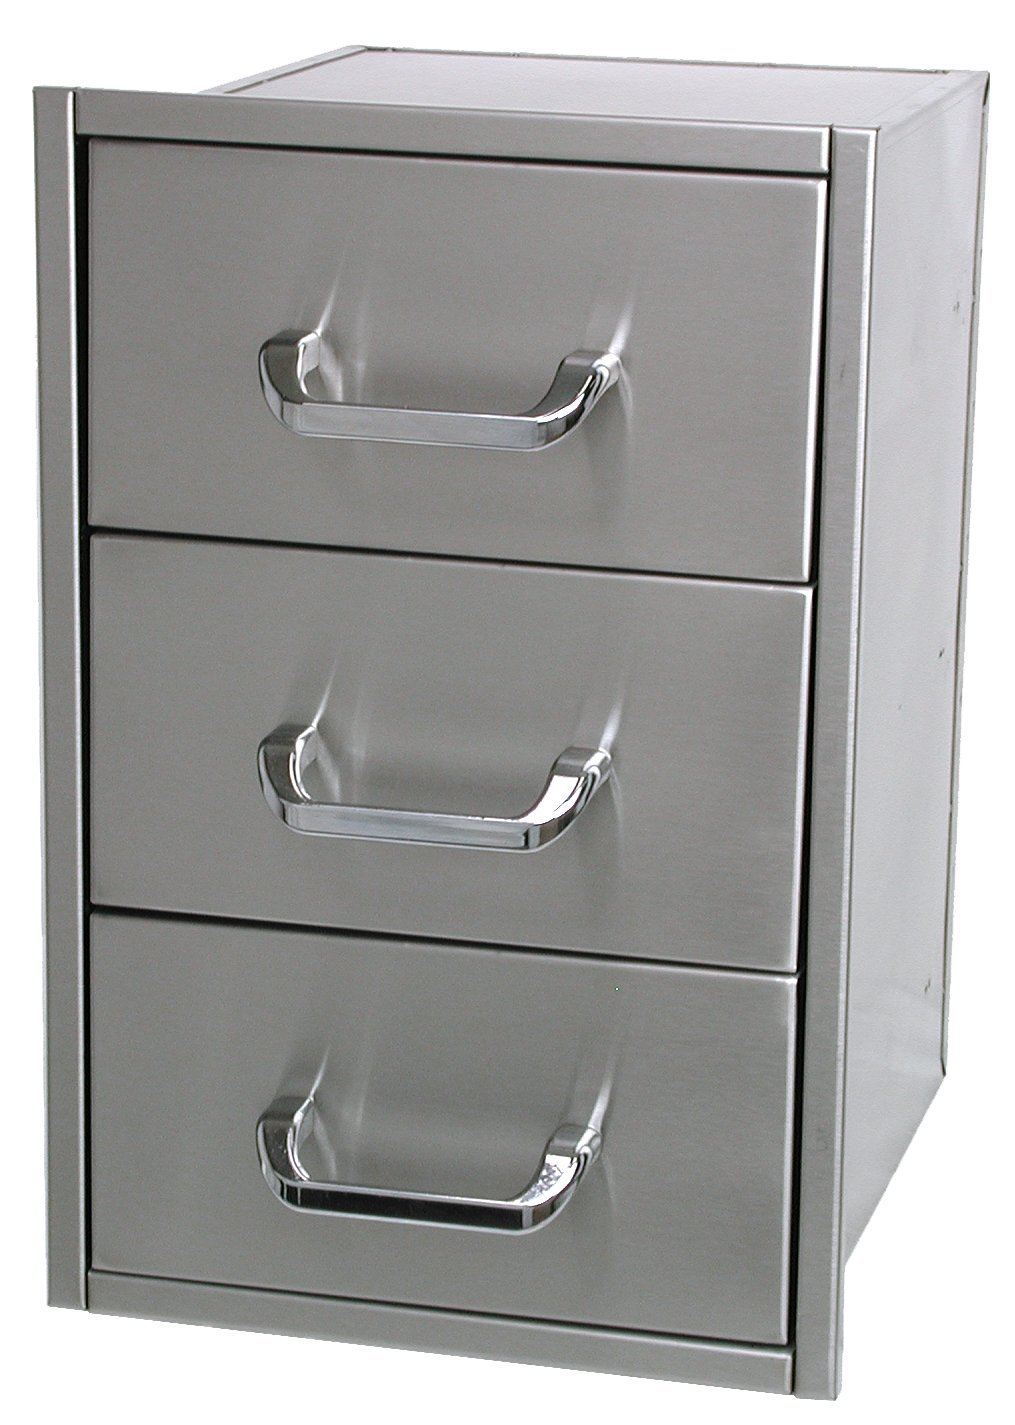 Solaire Narrow/Shallow Stainless Steel Drawer Set for Built-in Islands, Set of 3